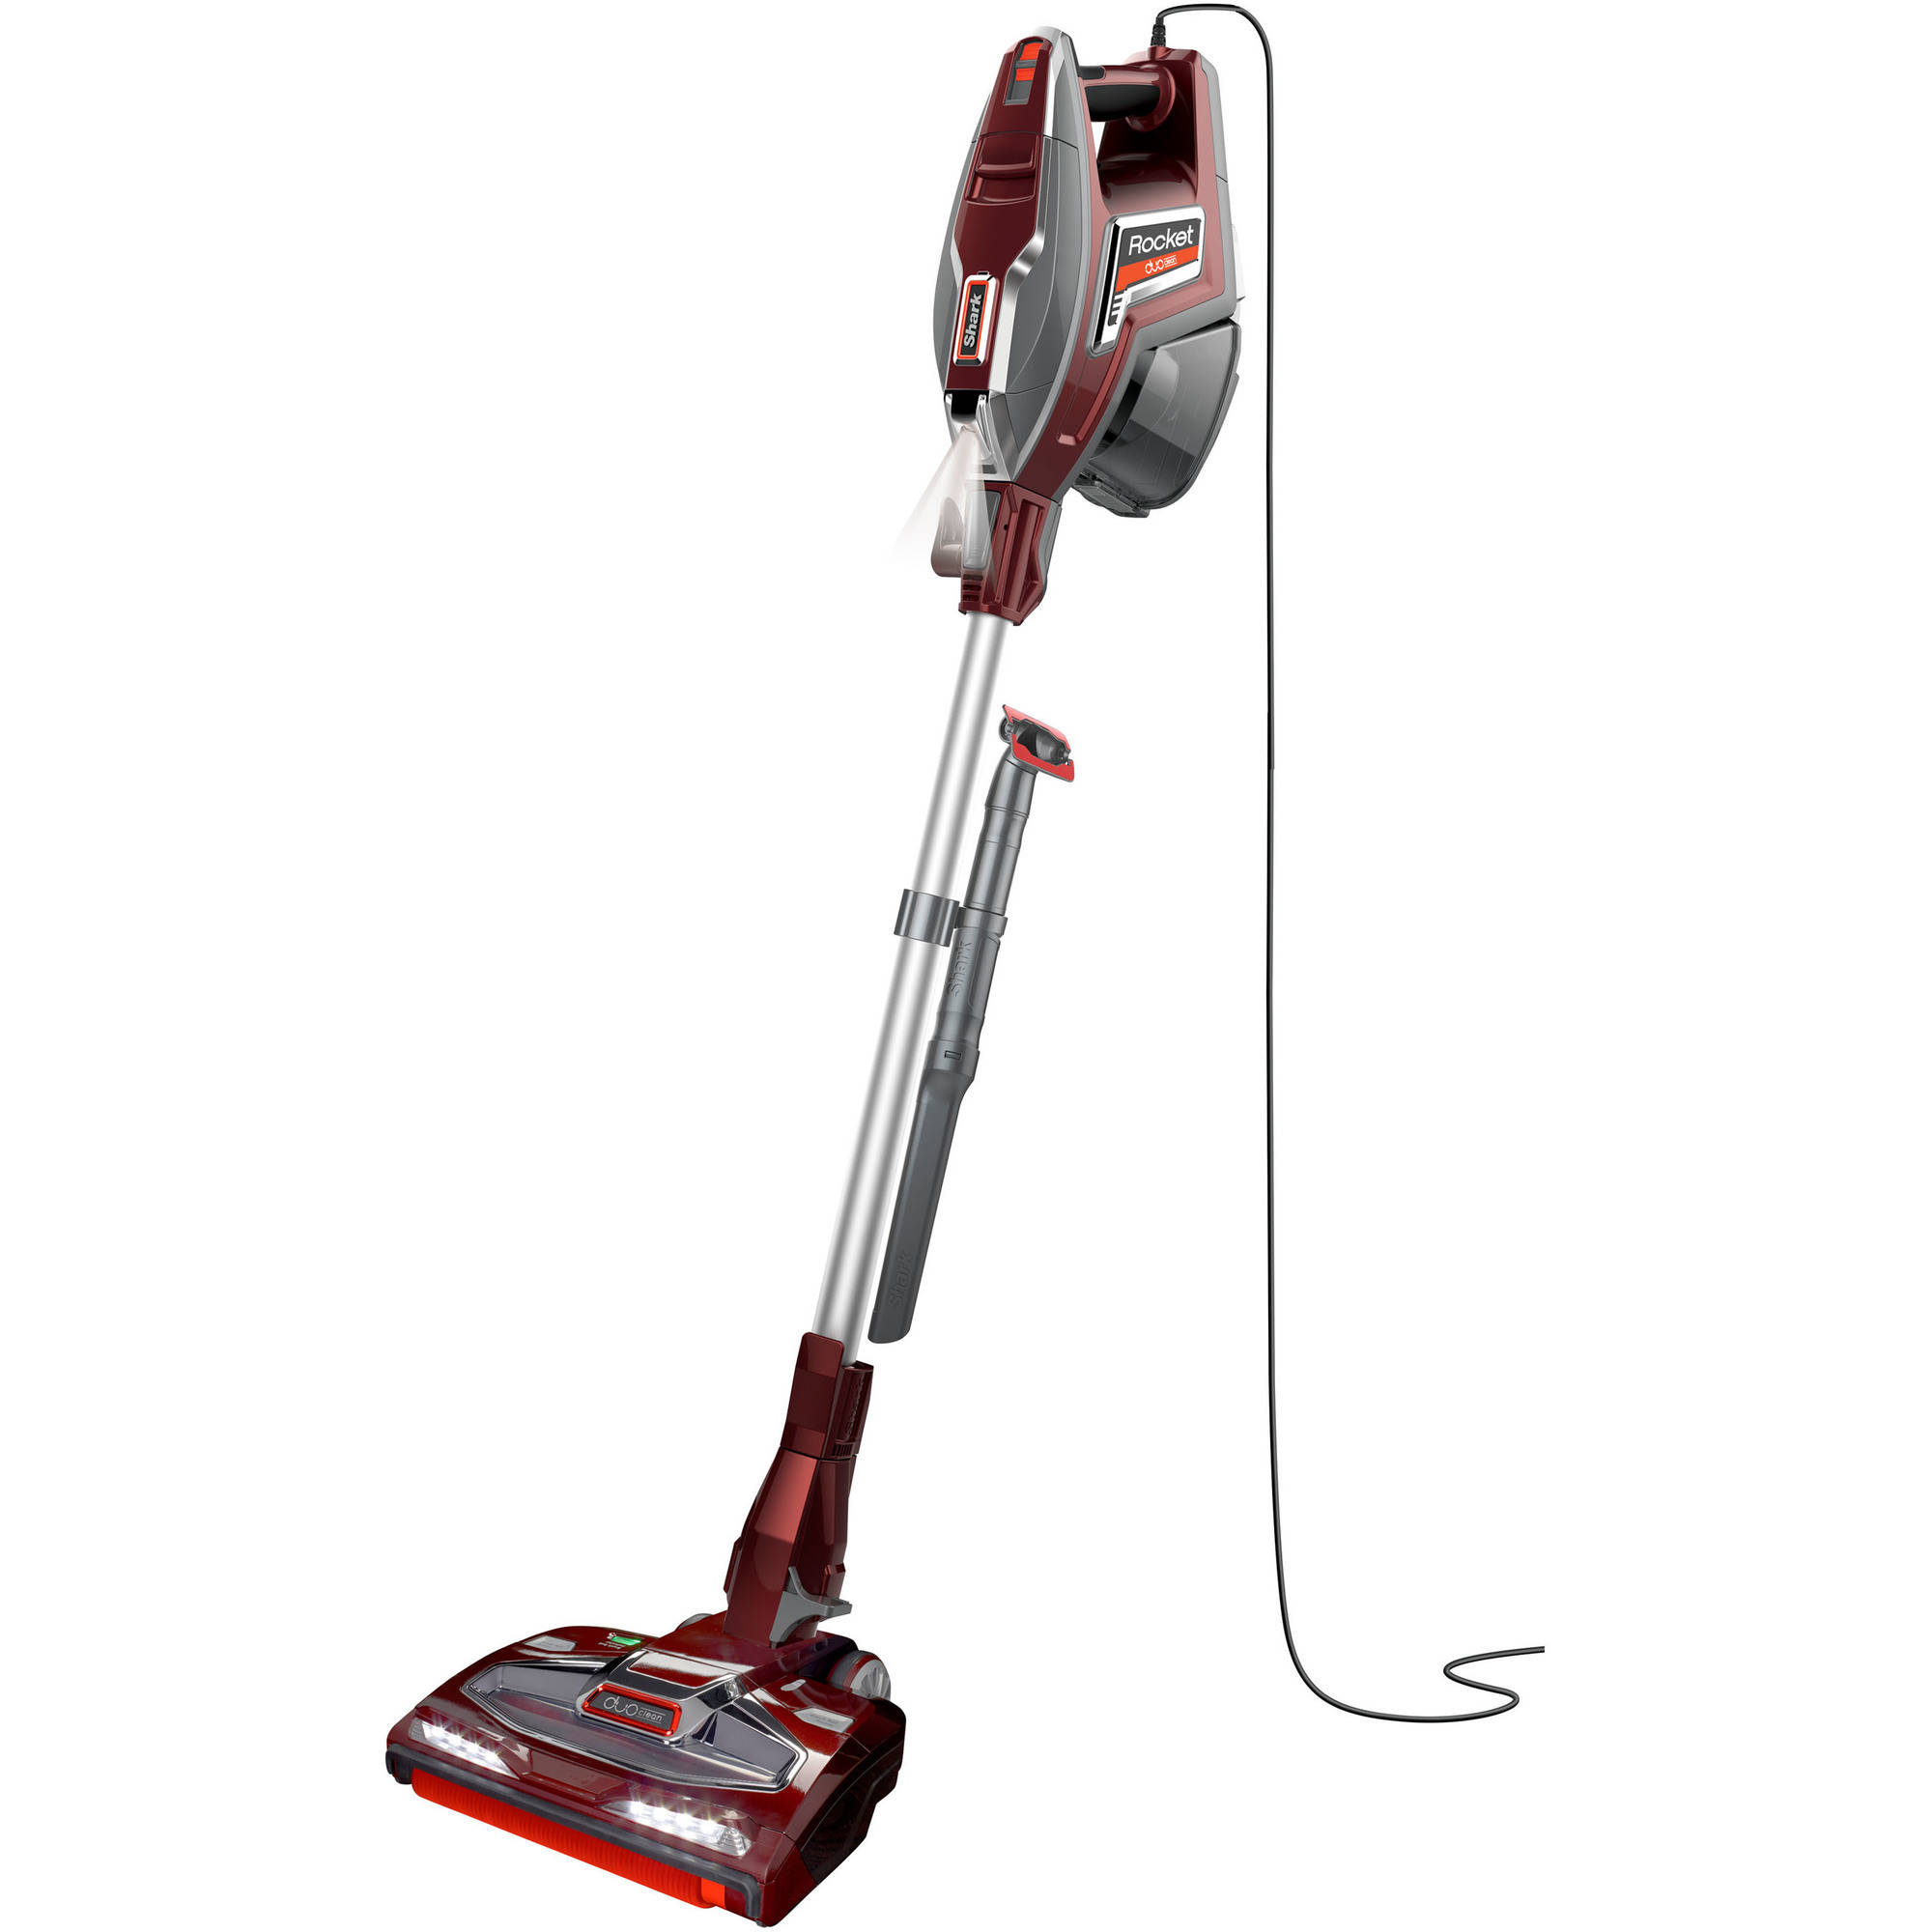 Shark Rocket Complete Corded Vacuum with DuoClean, Red, HV380